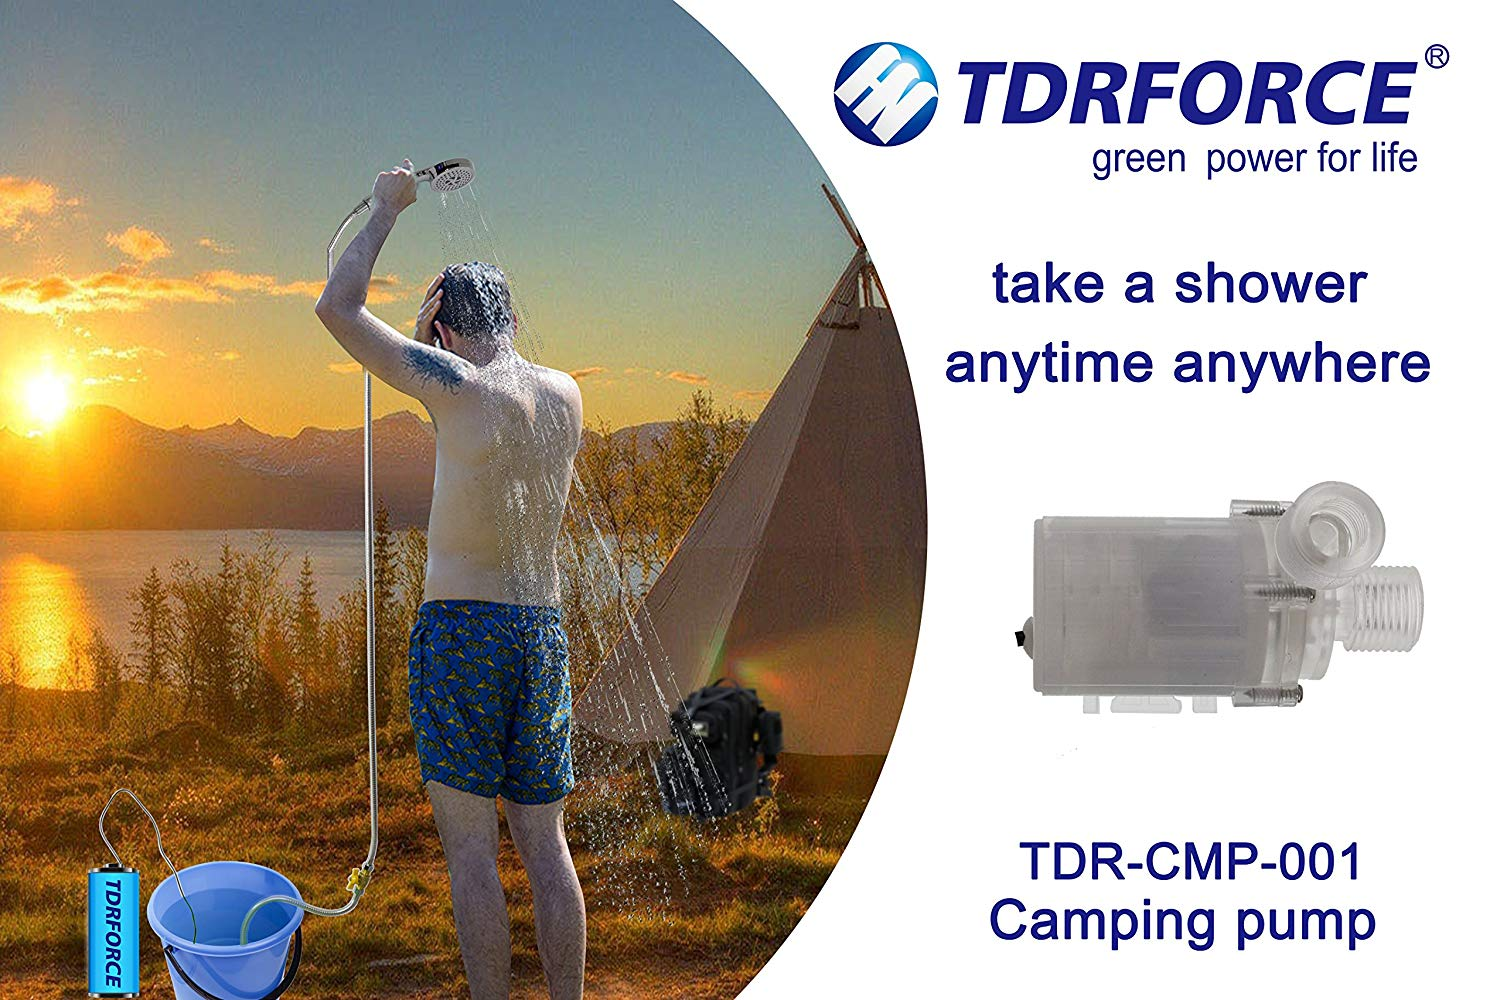 TDRFORCE Profession 24V Portable Outdoor Shower, Battery-Powered Rechargeable Handheld Shower for Camping r Camping Hiking Sailing Underwater Diving etc